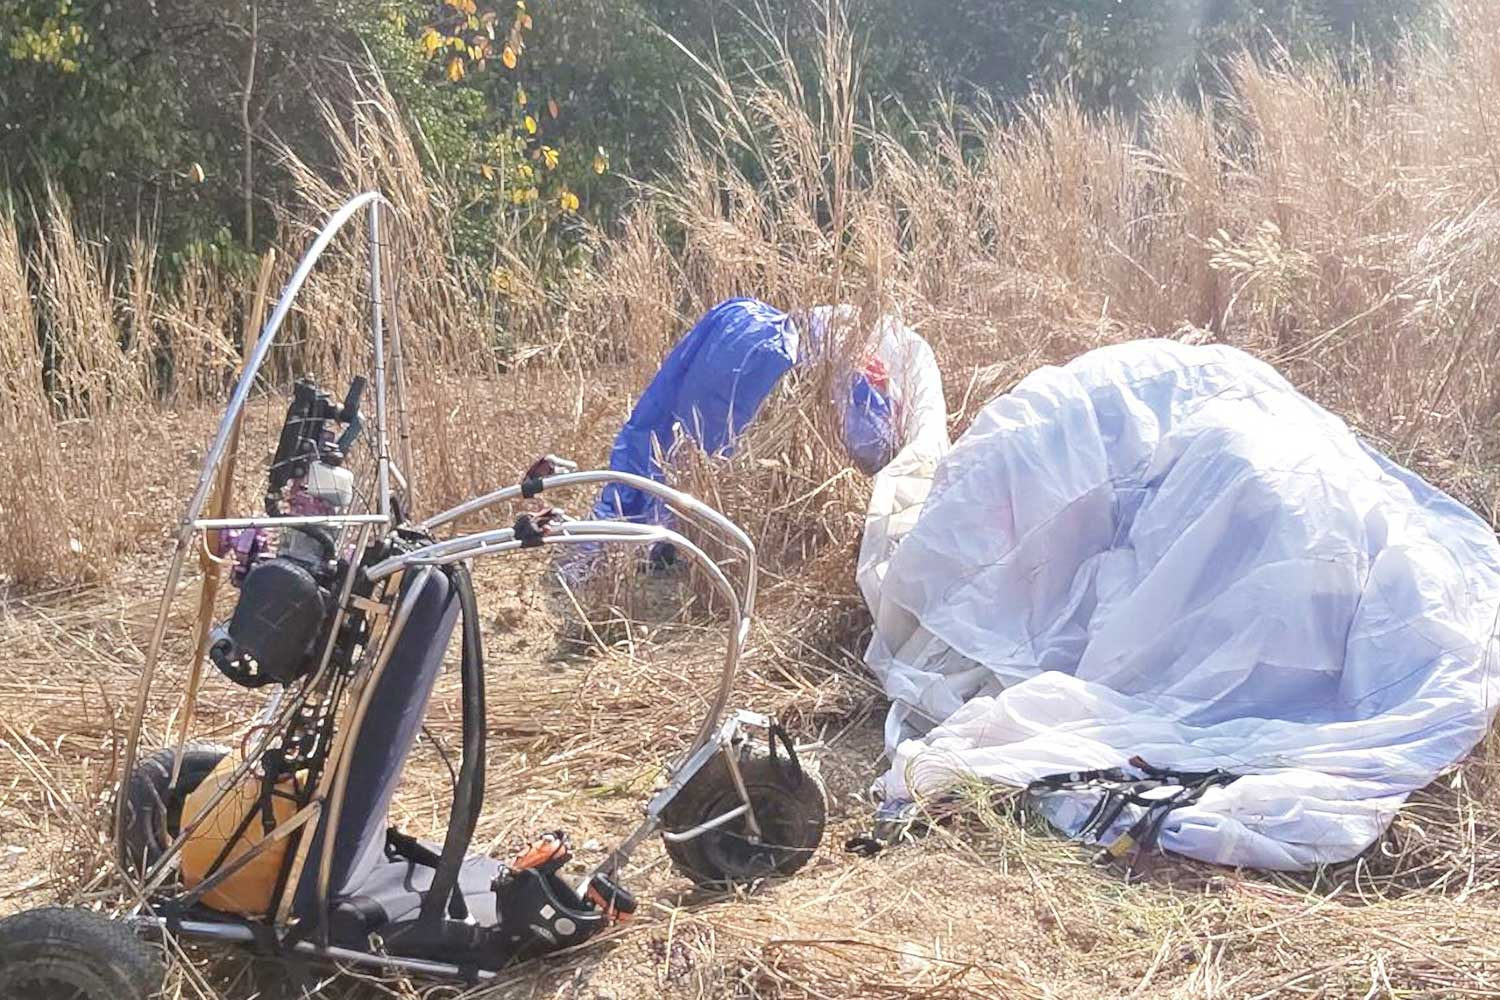 The crashed paramotor in a field in Bang Saray area of Chon Buri's Sattahip district on Wednesday. The flyer, a British national, was killed. (Photo: Chaiyot Pupattanapong)